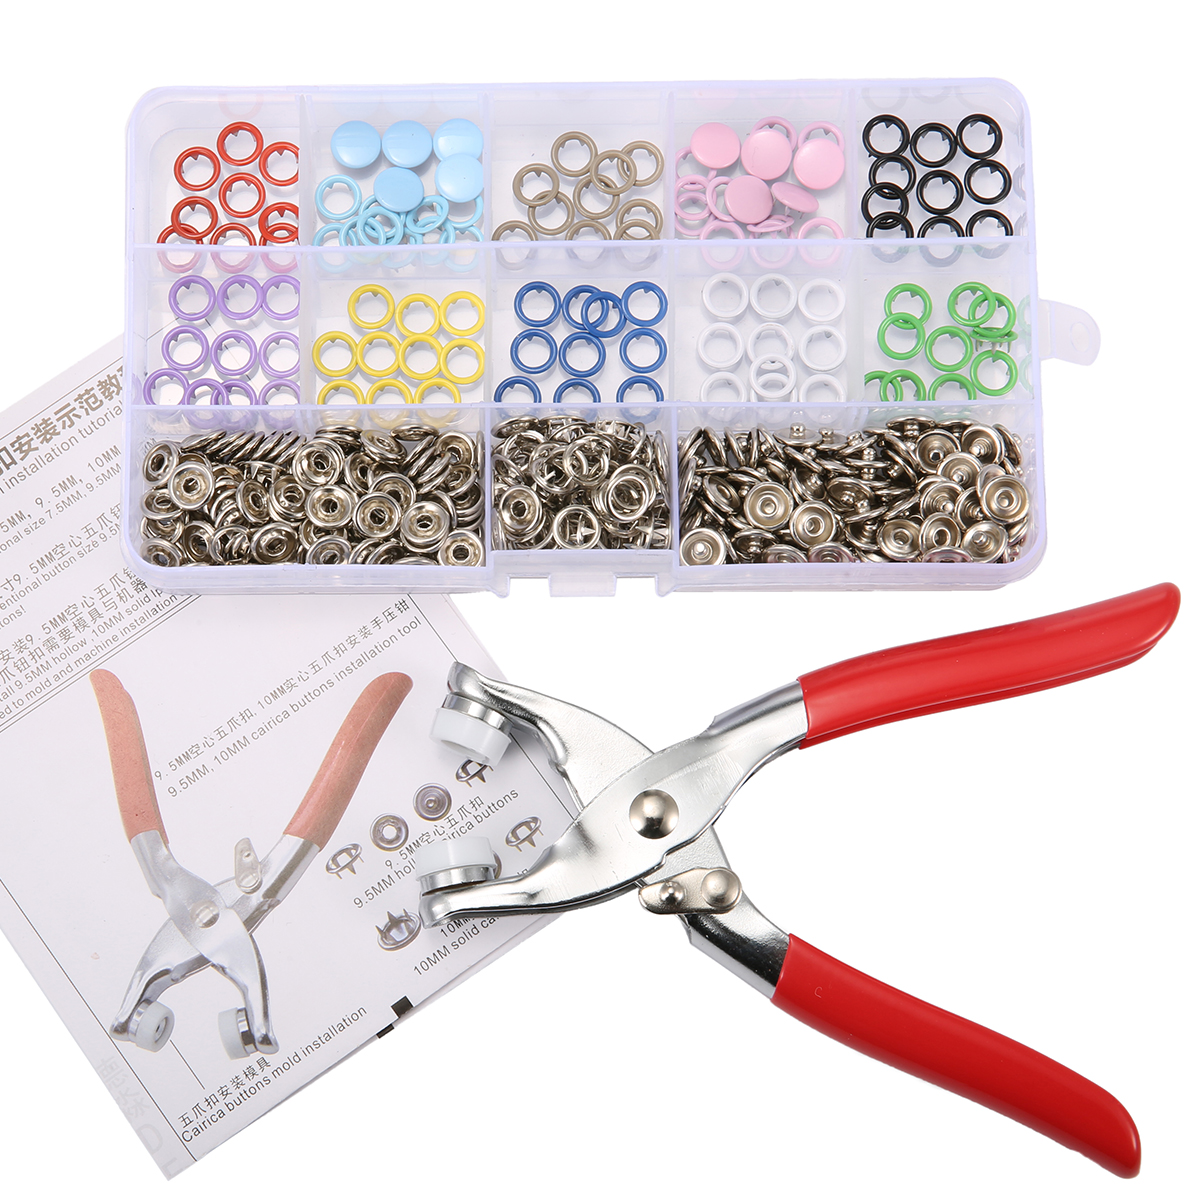 Snap Fastener Pliers Tool Kit 110 Sets Multicolor Copper Press Studs Snap Fasteners Poppers Sewing Clothing Snaps Button